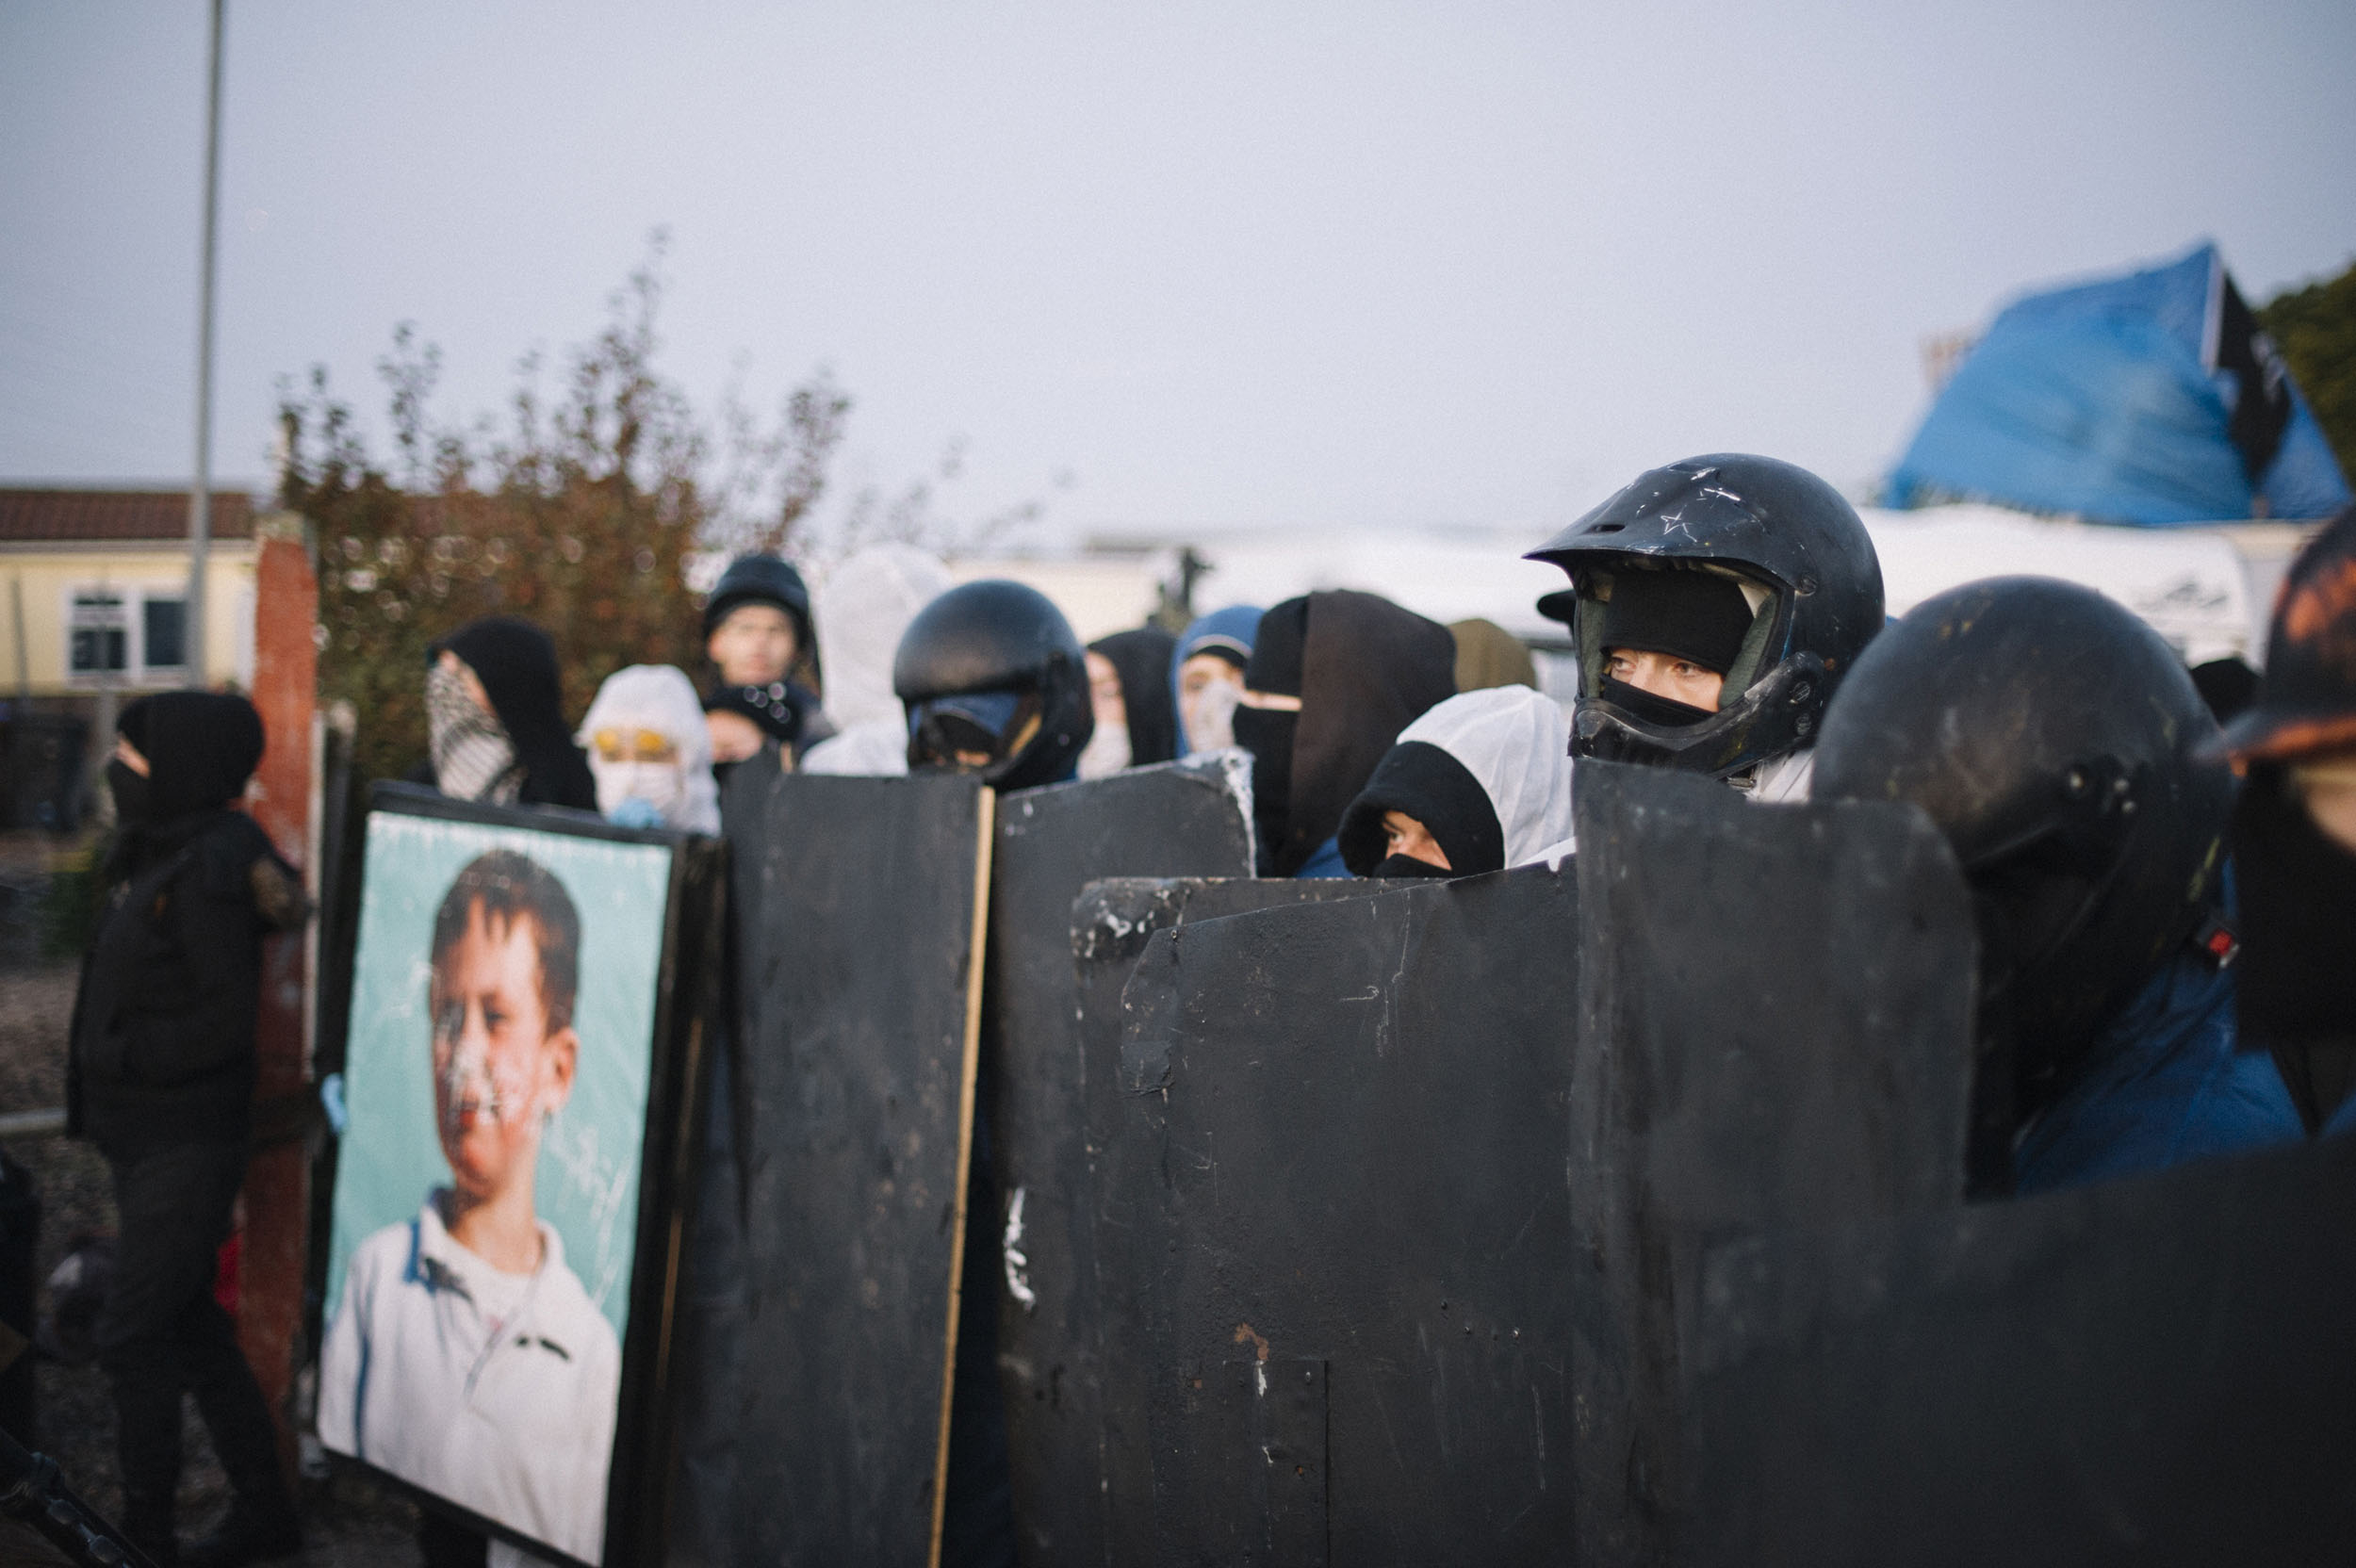 Protesters wear head protection and shields in preparation for clashes with police.